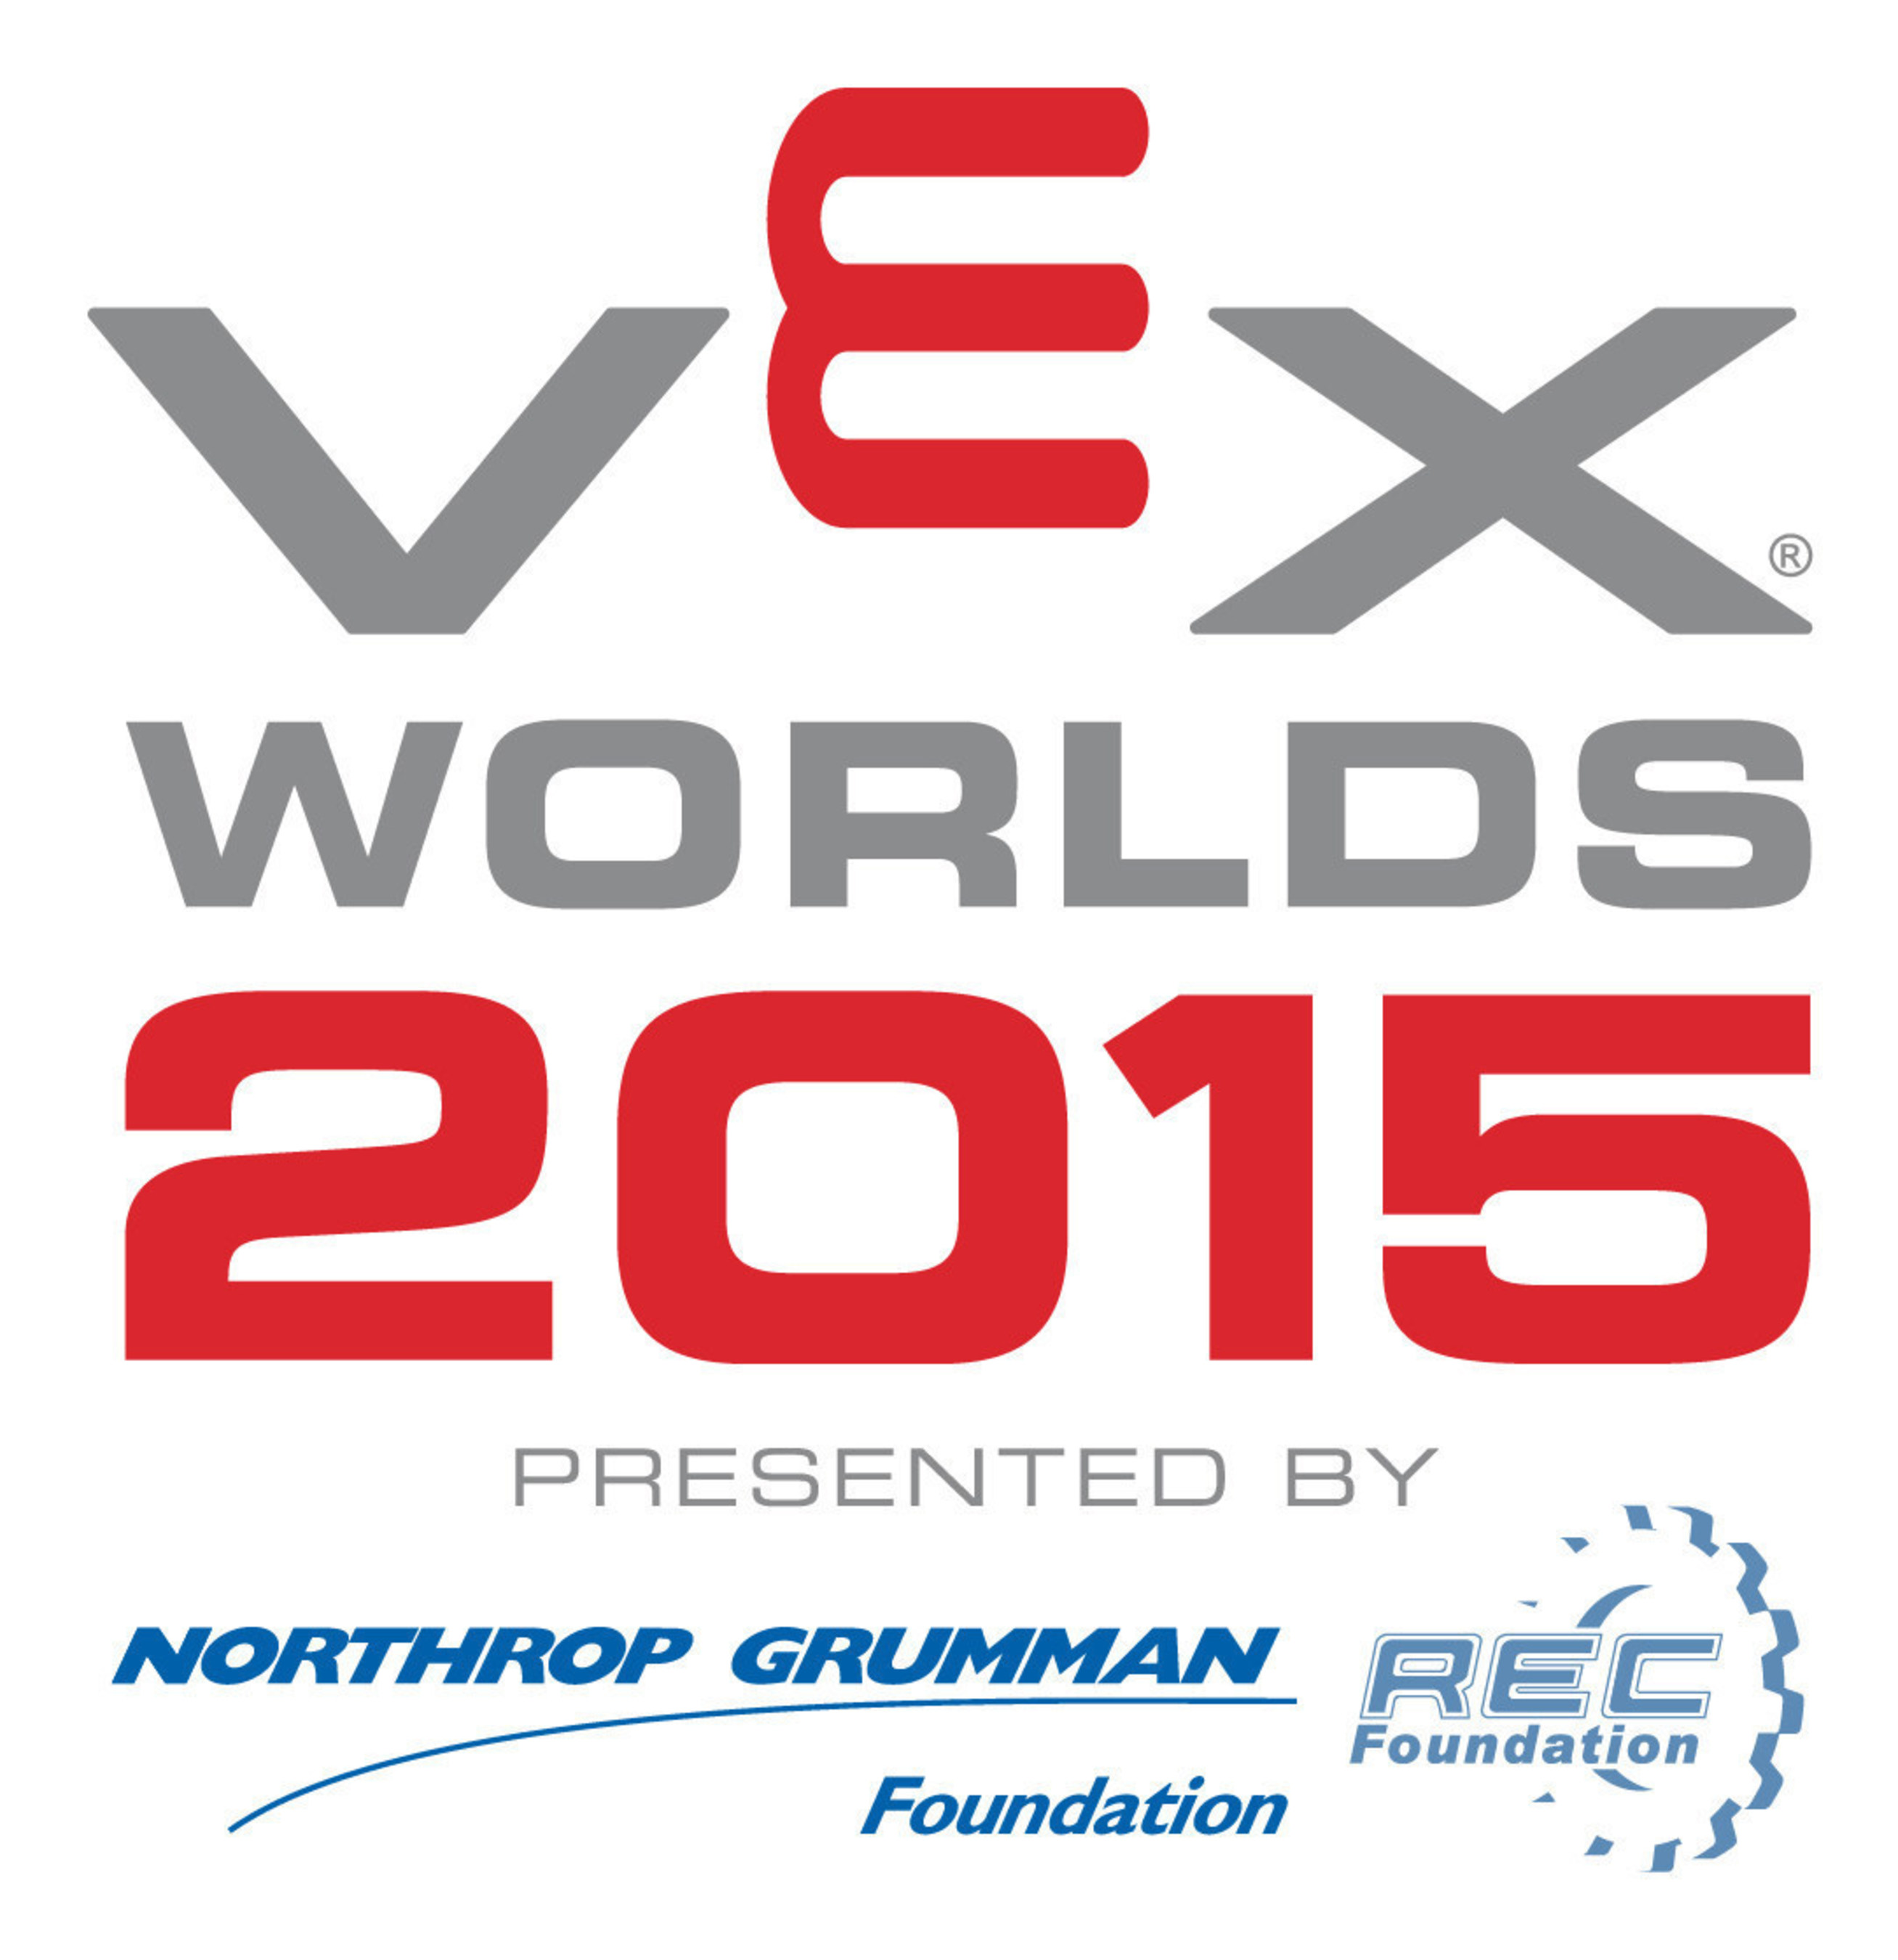 Students From China, New Zealand, Singapore, And The United States Crowned Champions Of VEX Worlds 2015 - The Largest Educational Robotics Competition In The World